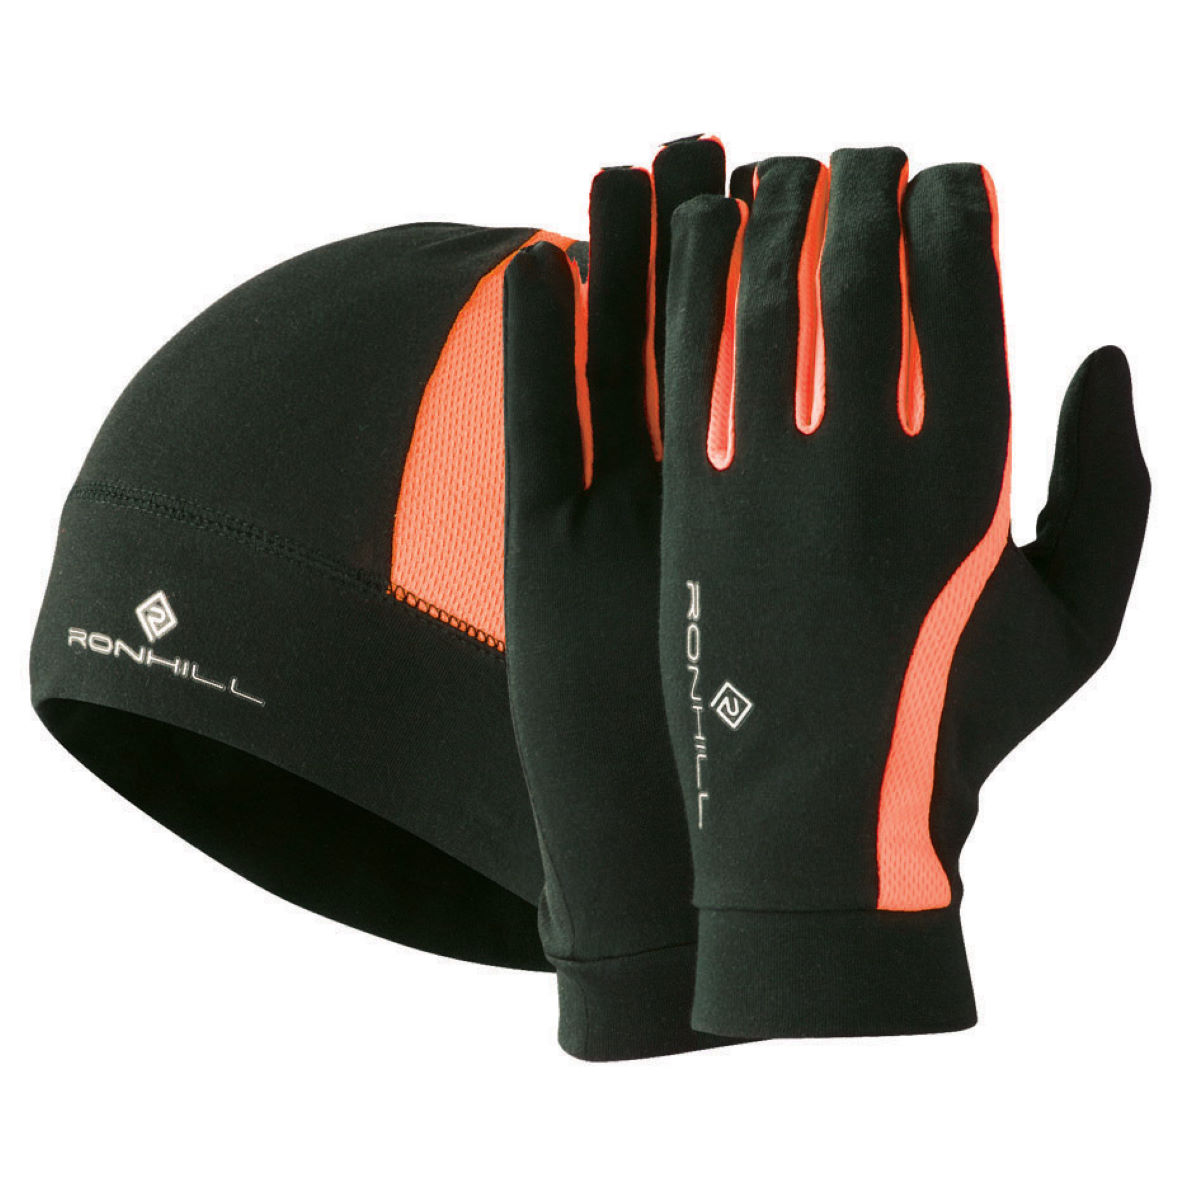 Ronhill Vizion Beanie and Glove Set - AW13